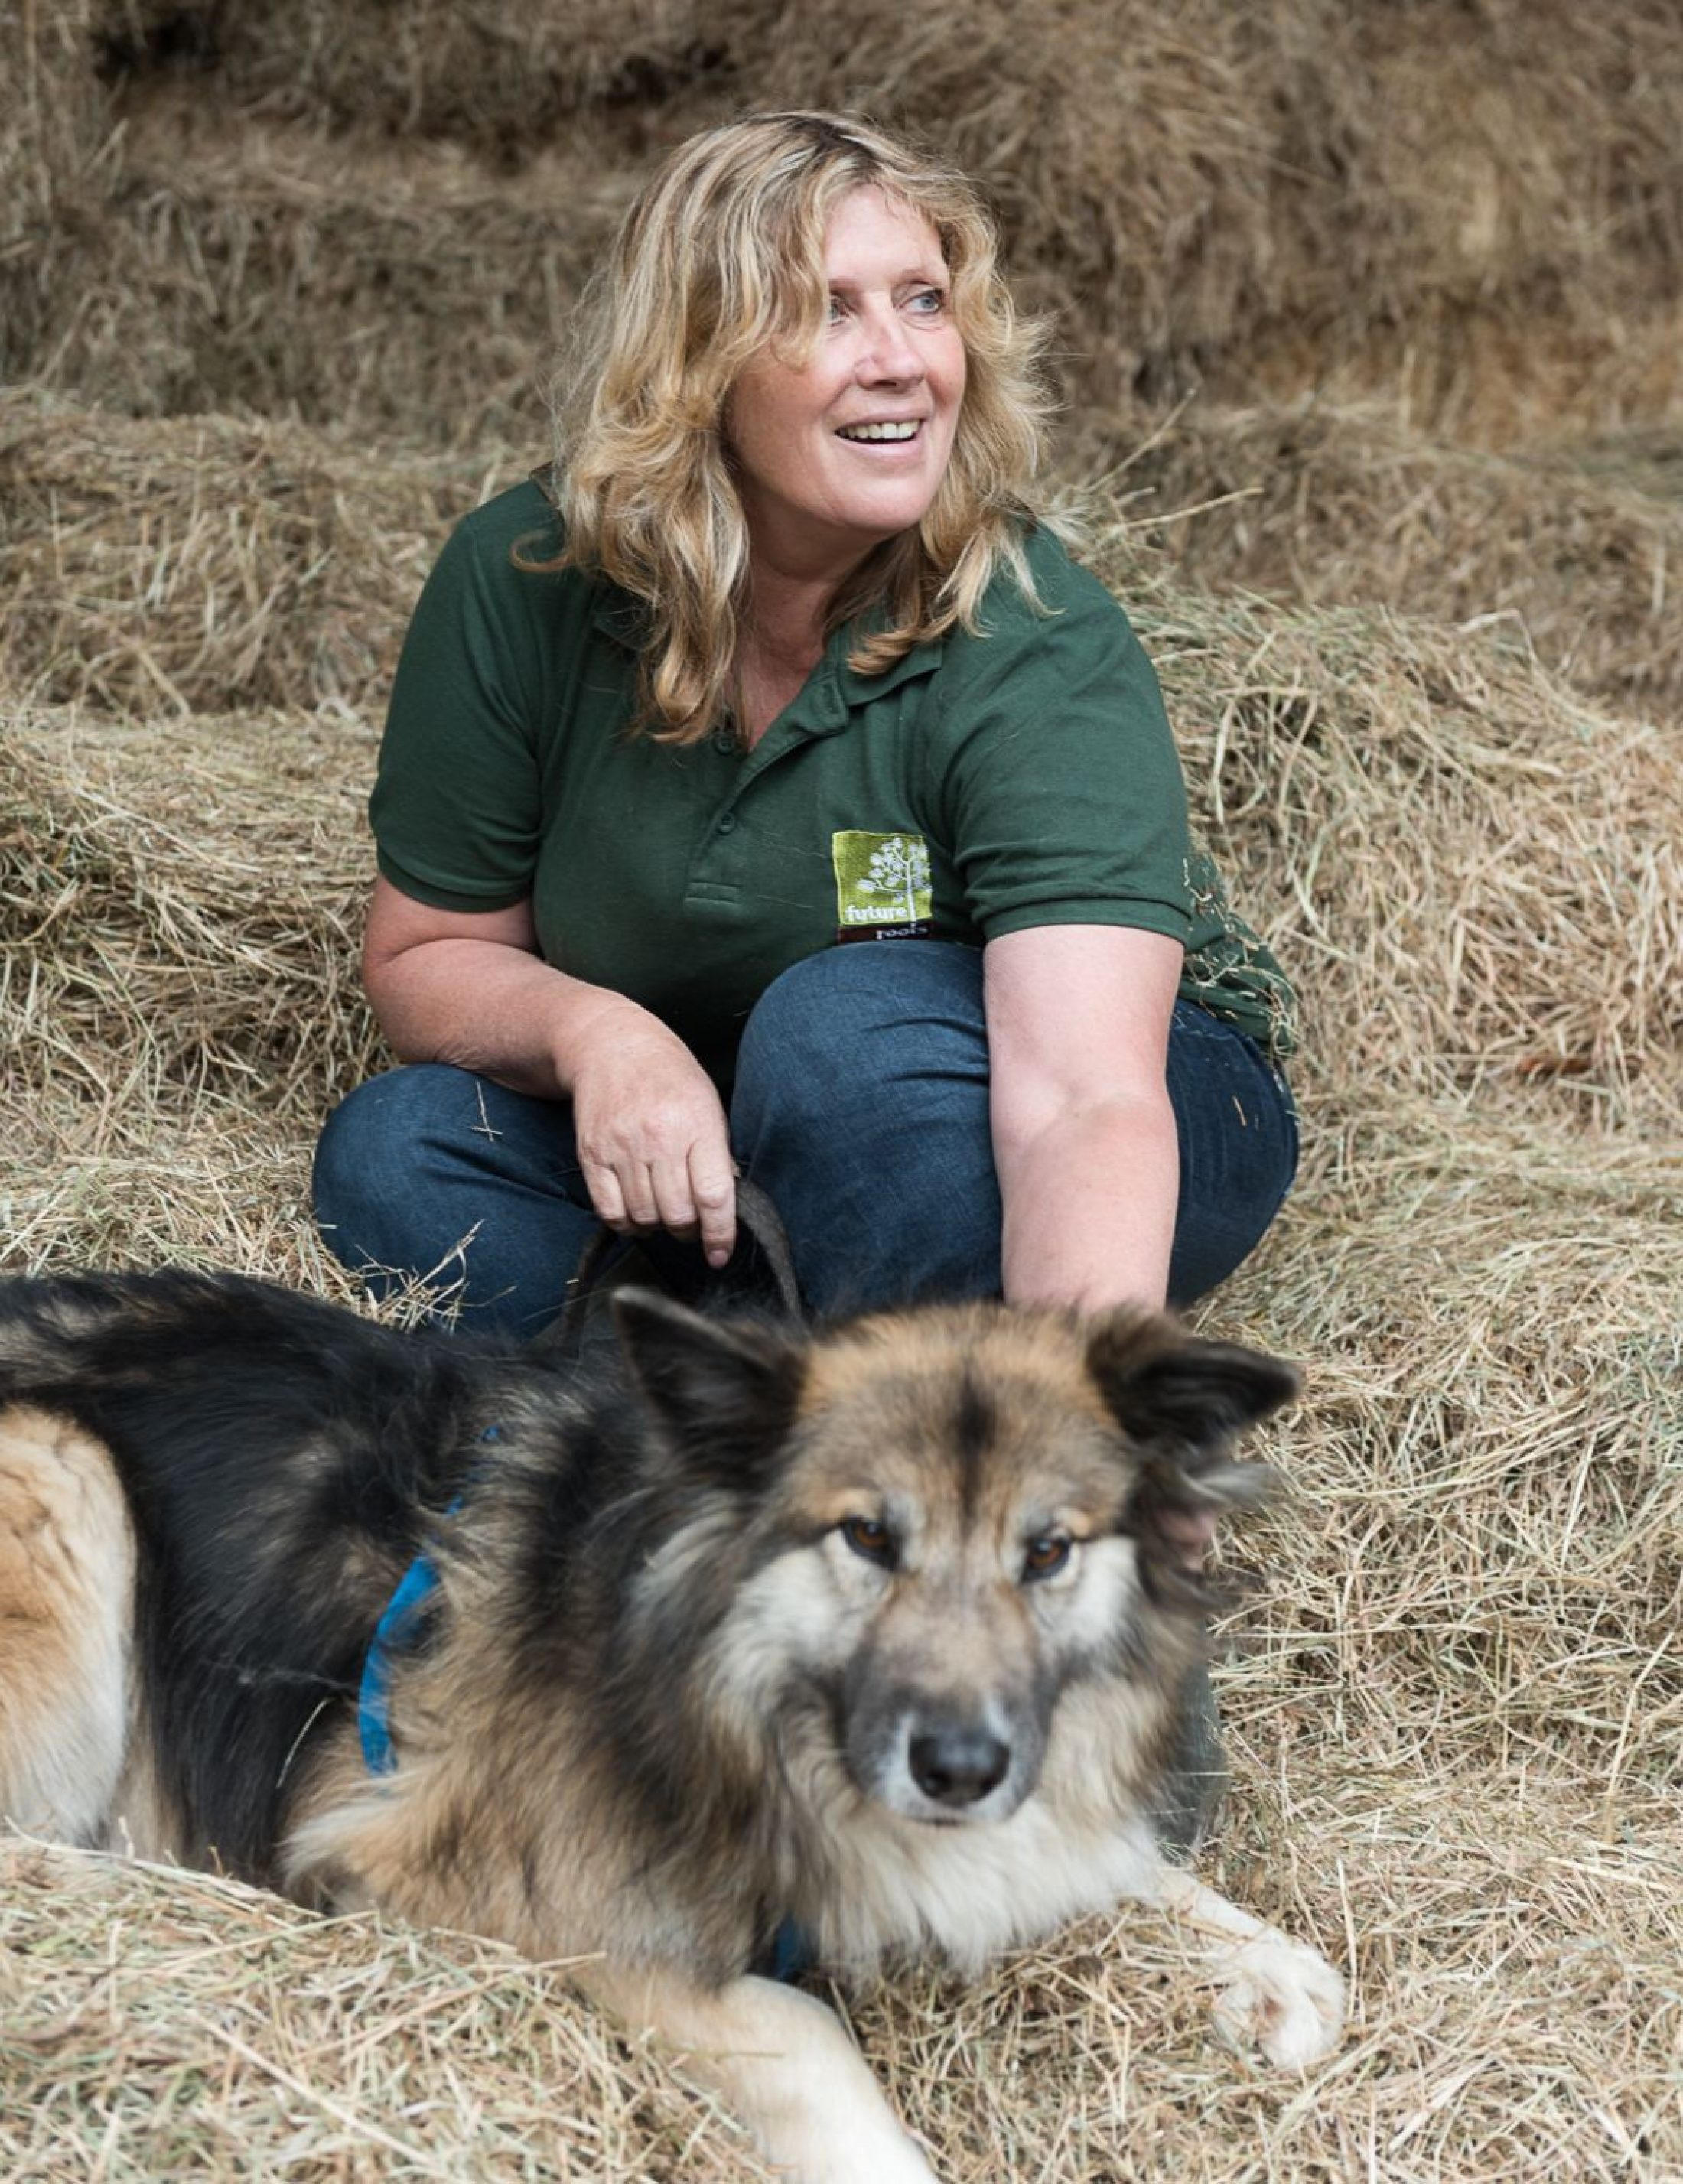 Julie Plumley started a care farm after a career as a social worker